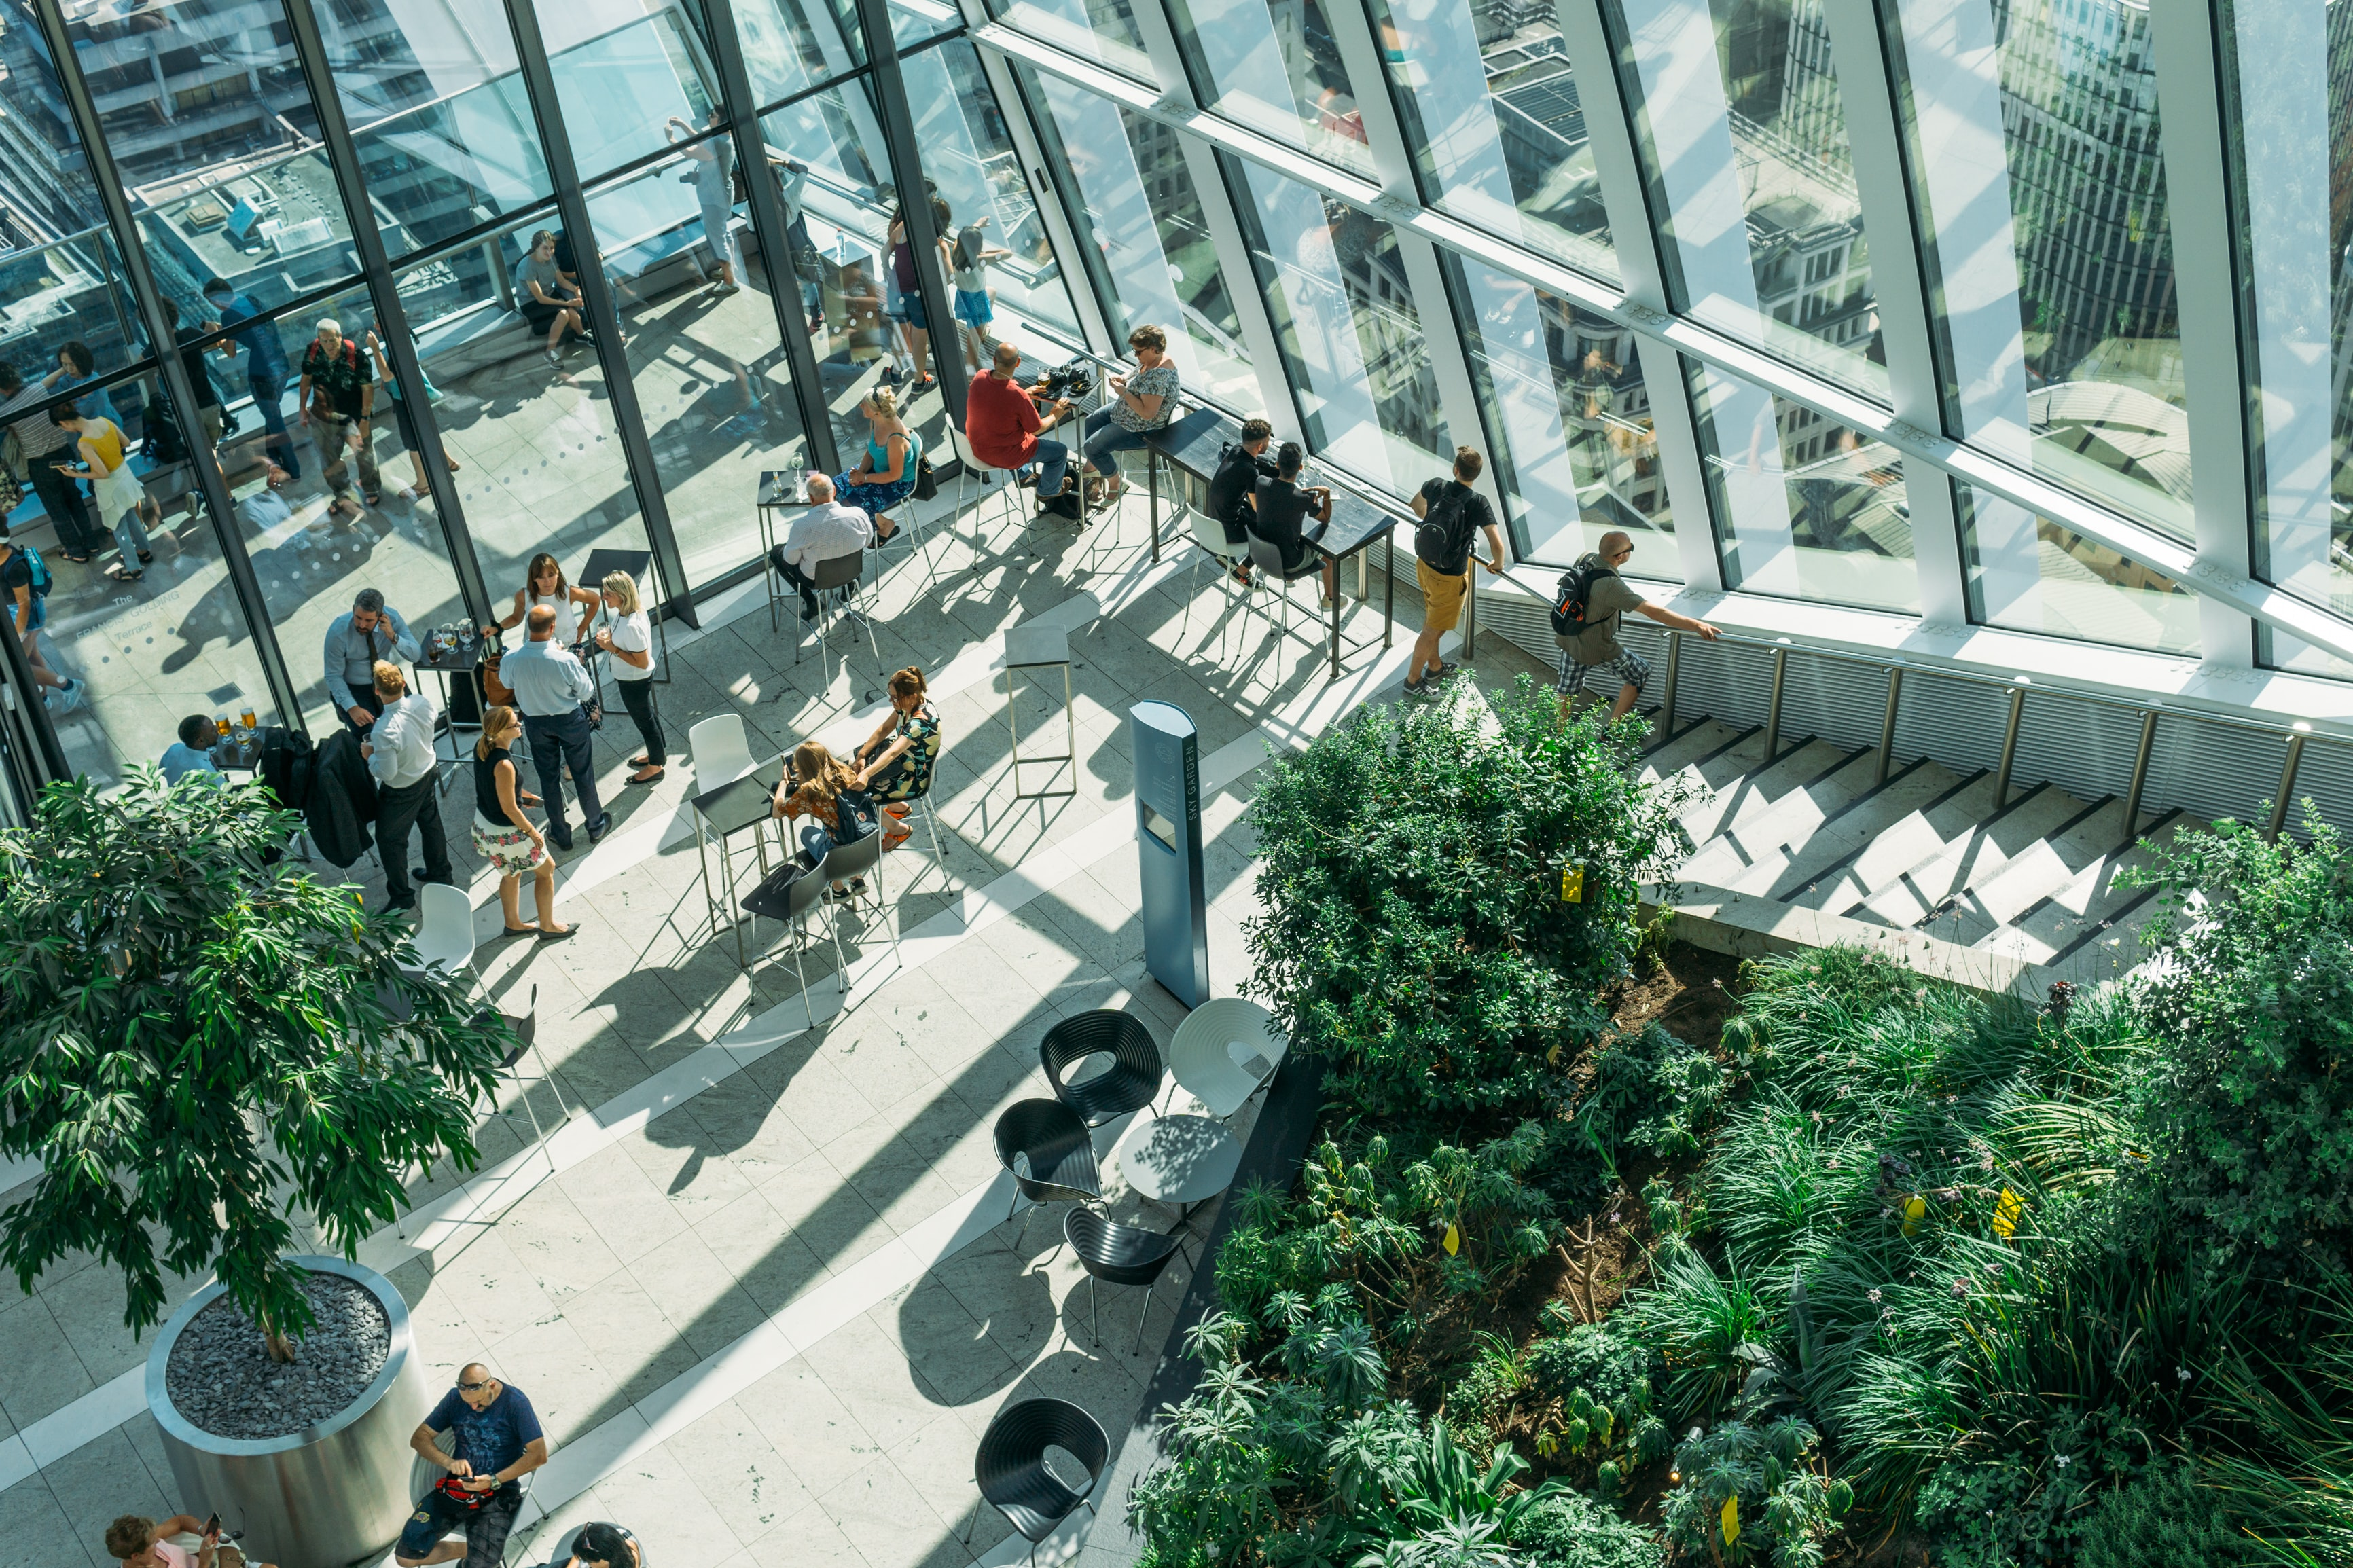 people gather in building beside green-leafed plants